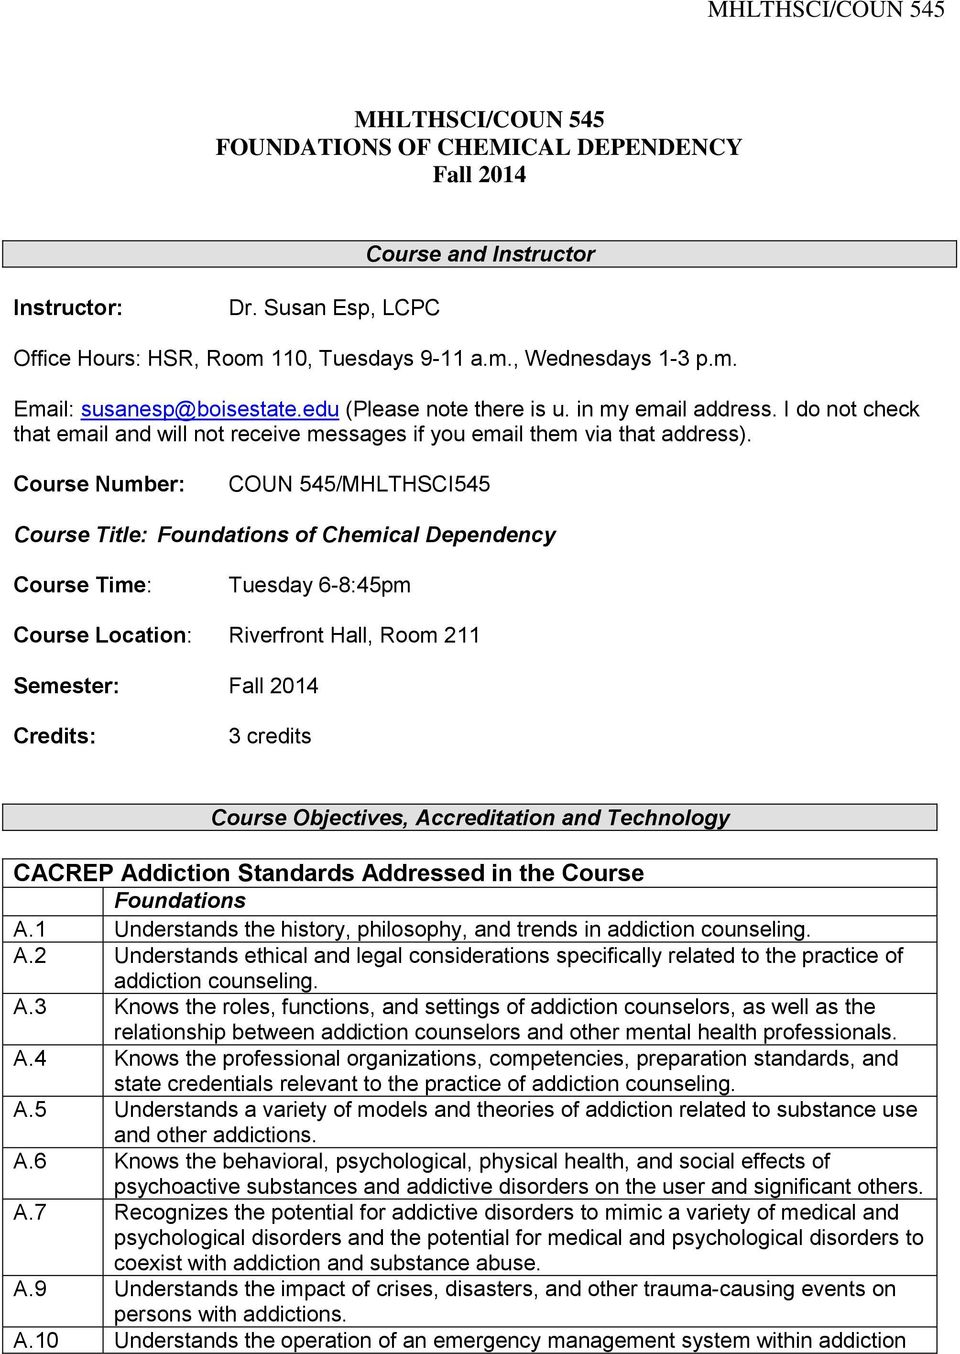 Course Number: COUN 545/MHLTHSCI545 Course Title: Foundations of Chemical Dependency Course Time: Tuesday 6-8:45pm Course Location: Riverfront Hall, Room 211 Semester: Fall 2014 Credits: 3 credits